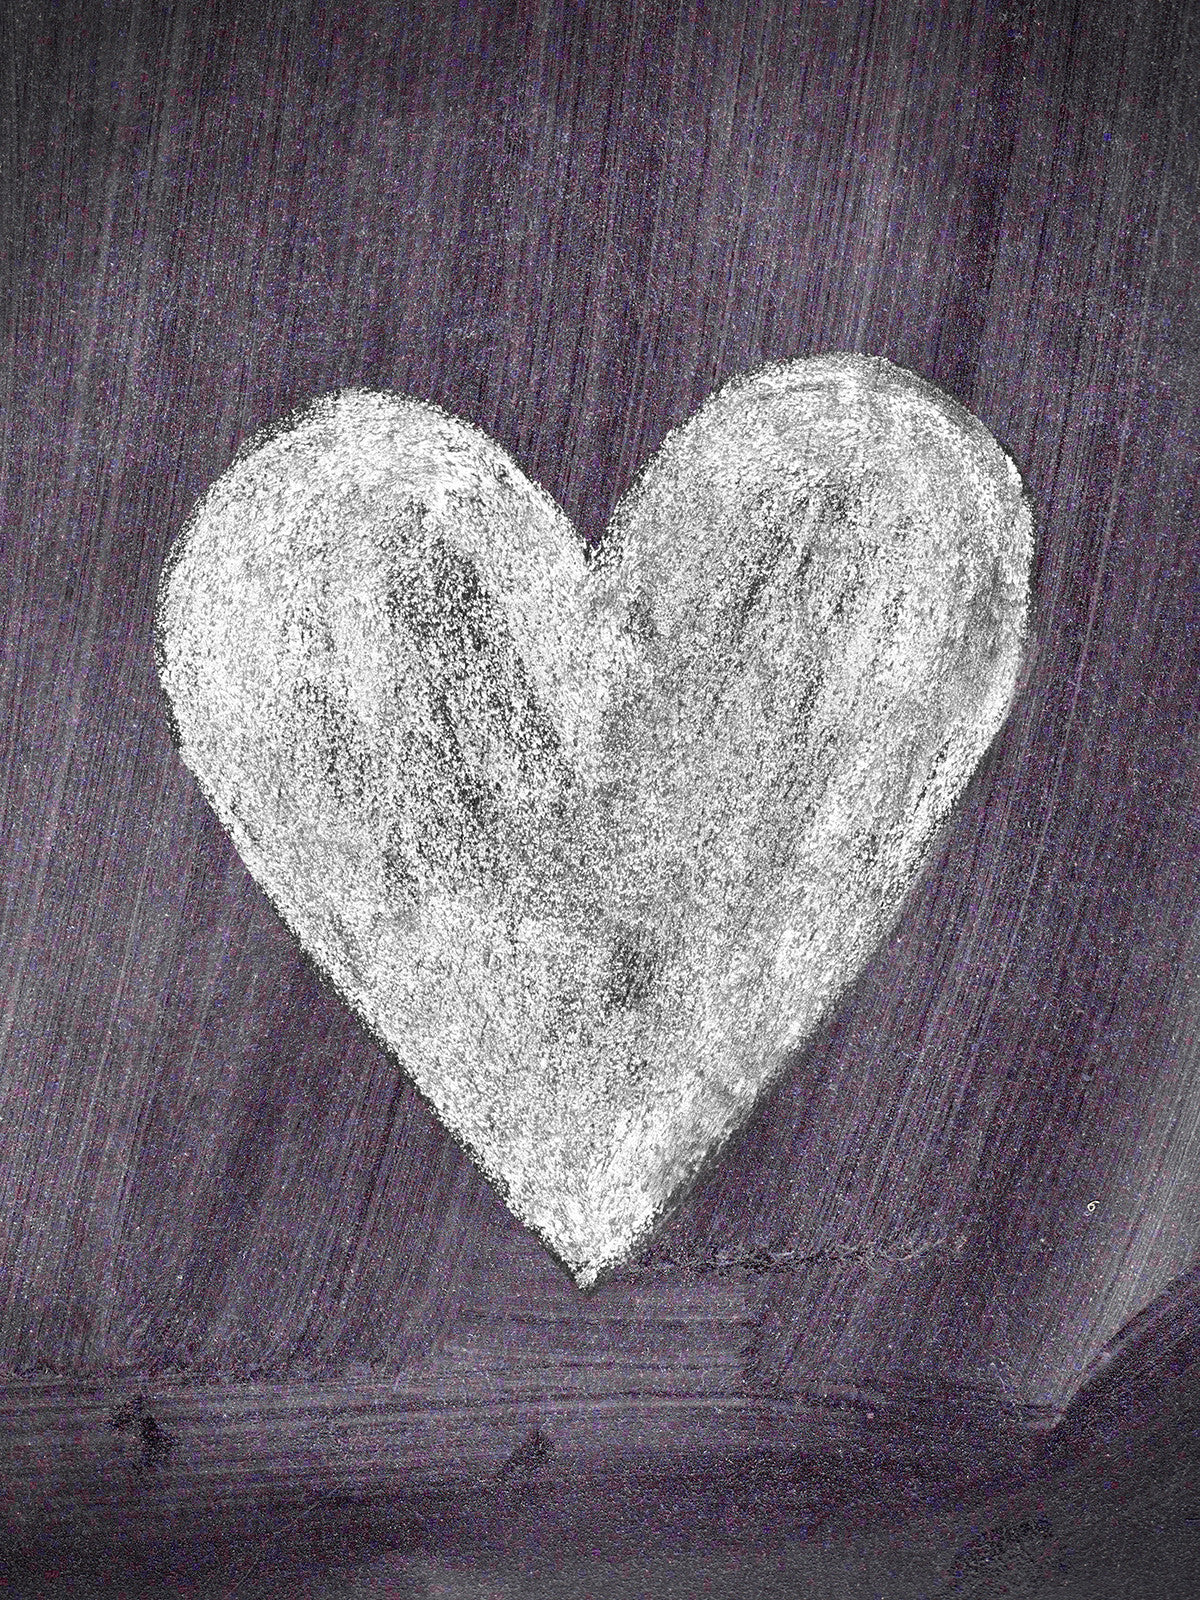 Chalkboard Heart Photo Background / 9506 - DropPlace